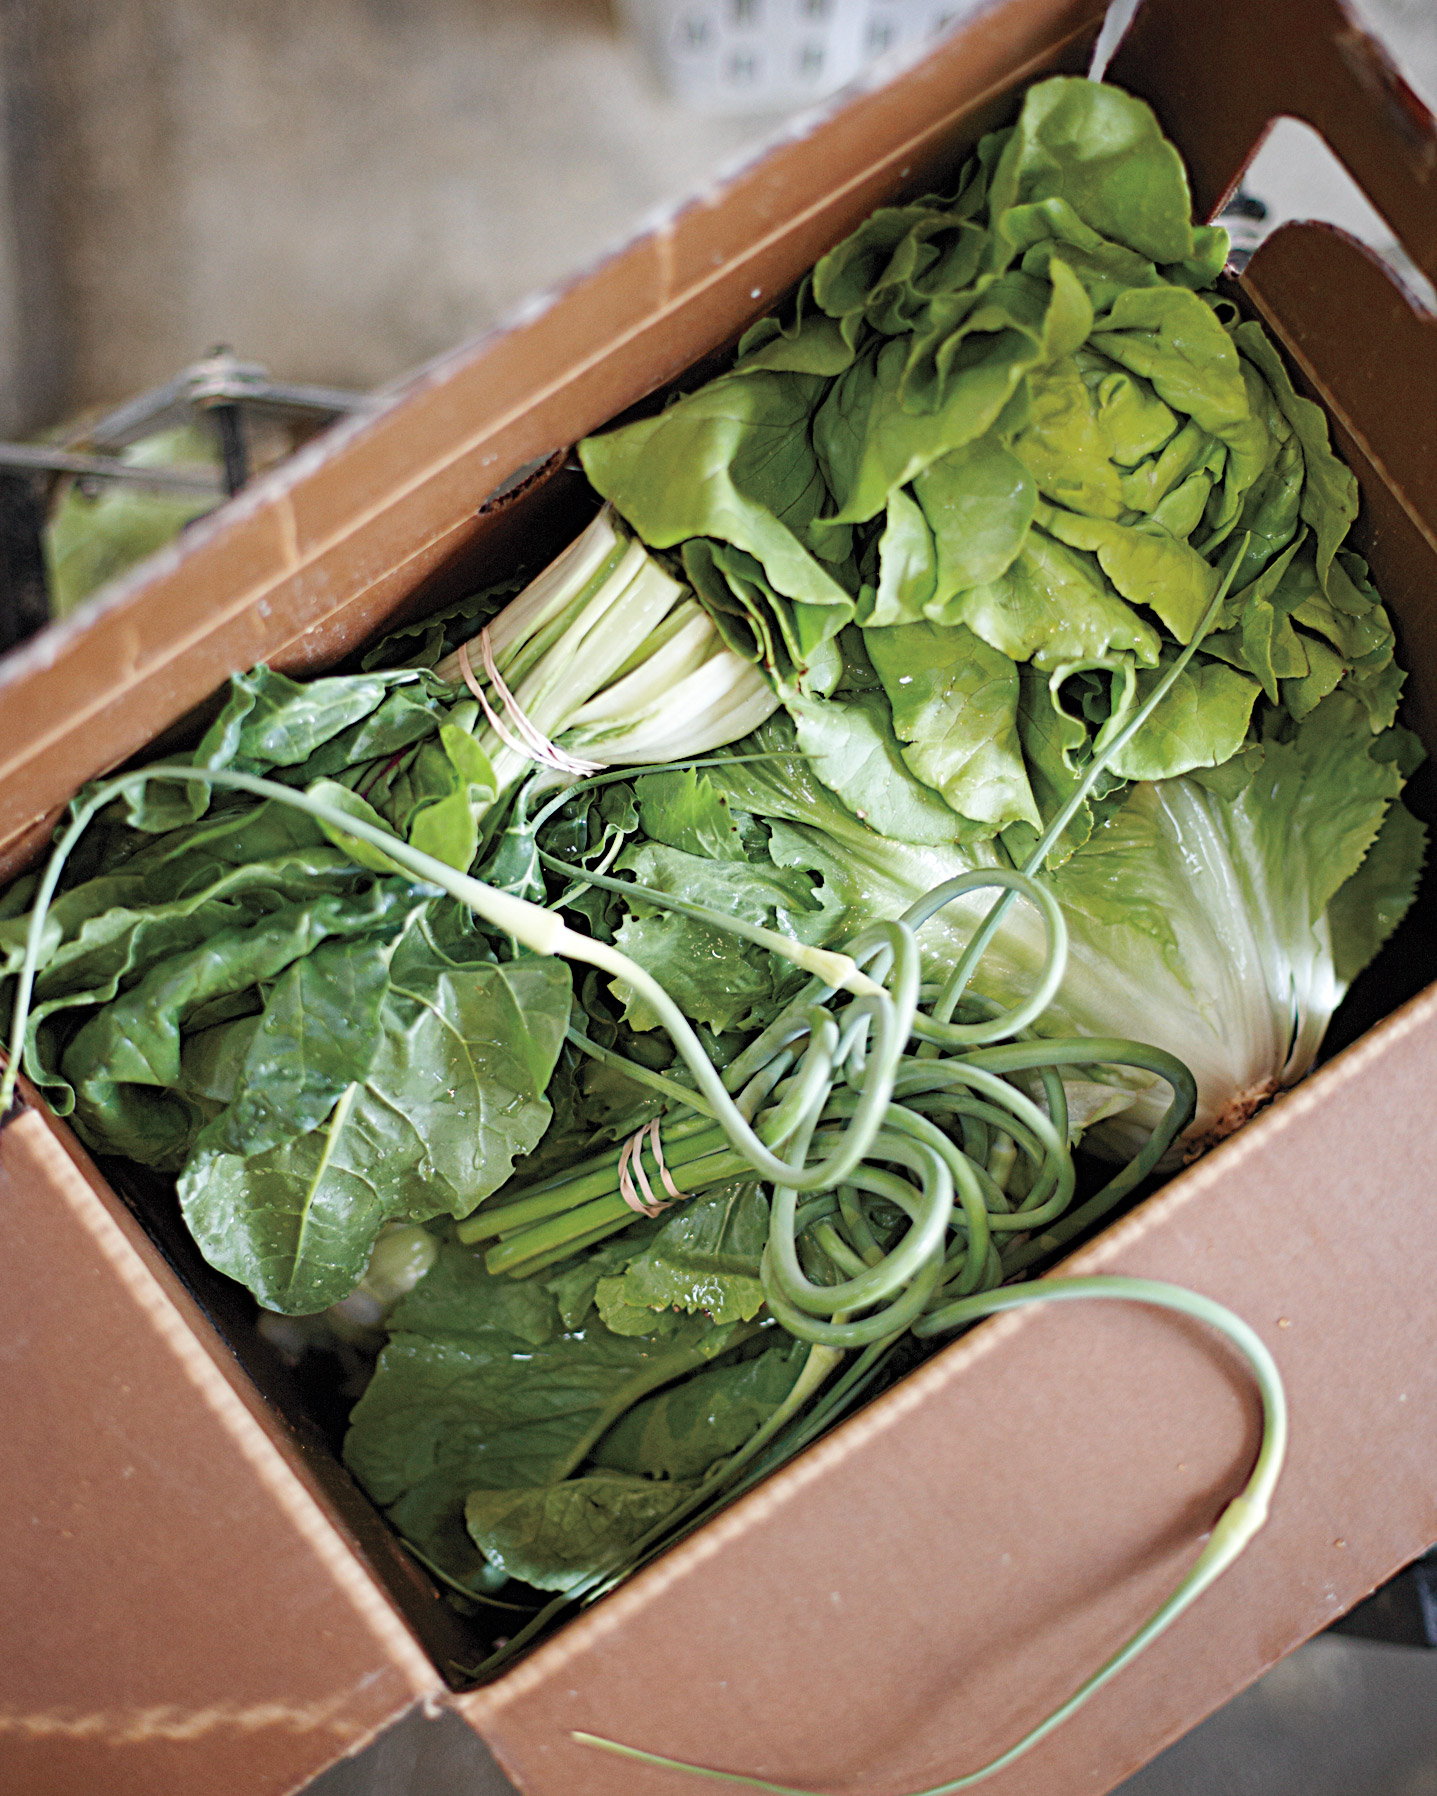 box of vegetables including lettuce, Swiss chard, garlic scapes